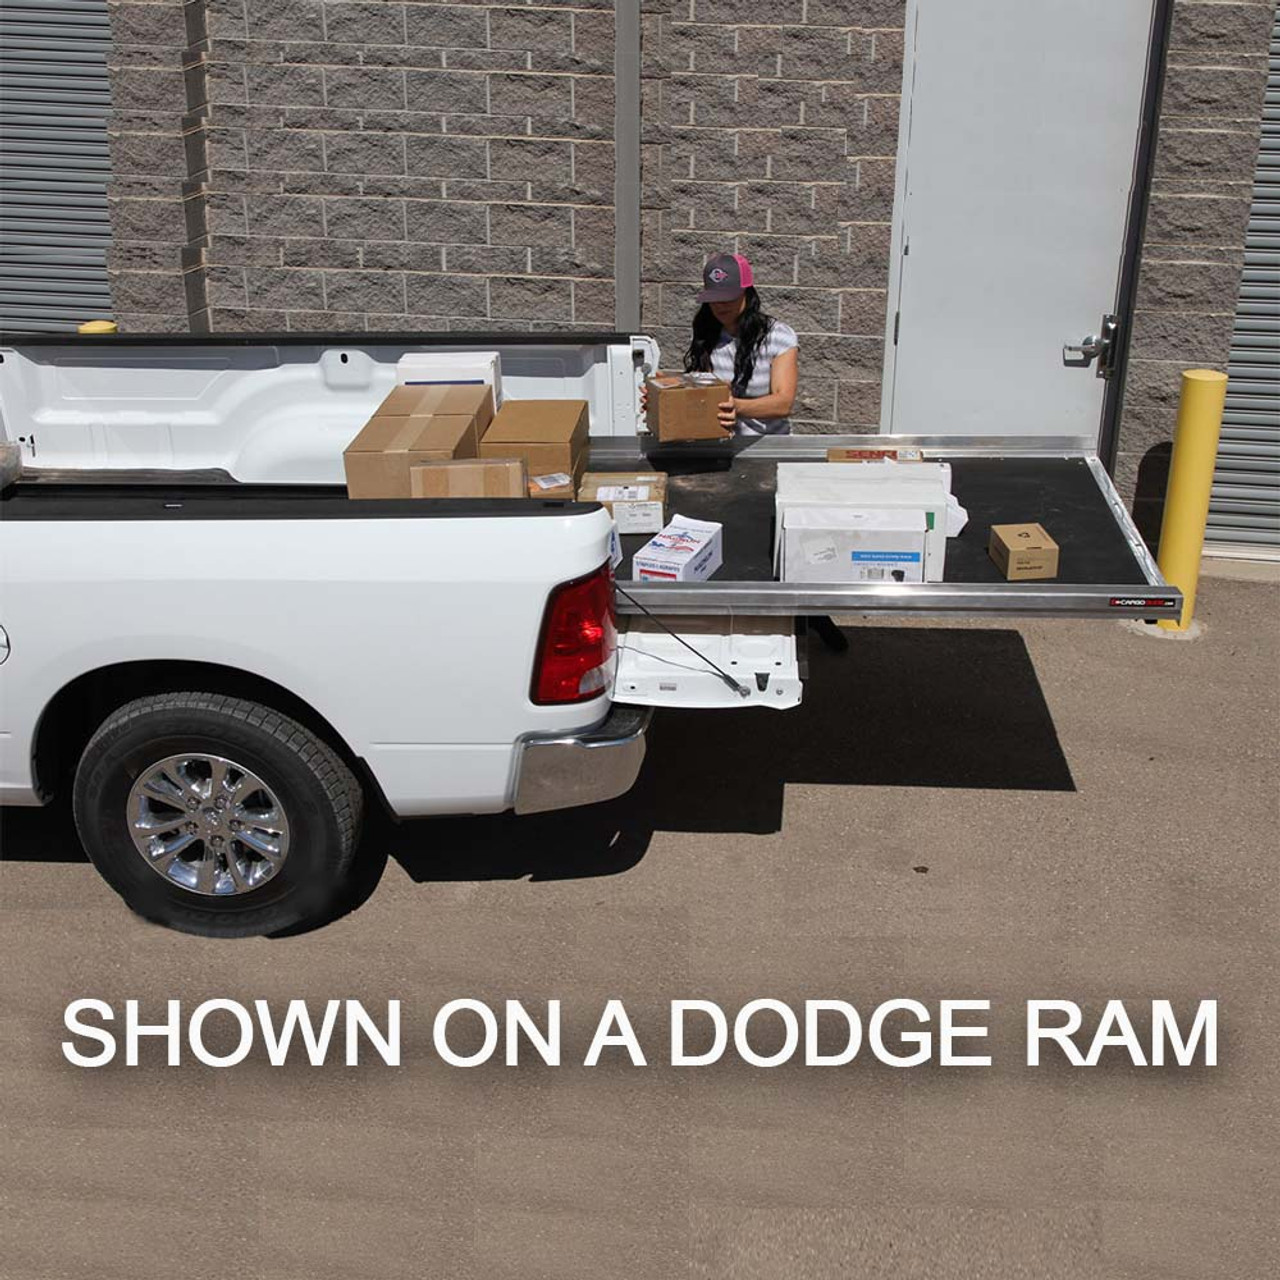 "Cargo-Glide CG1000 Toyota Tundra Steel Truck-Bed Slide and Extender, 1000 lb Capacity, 65-75% Extension, 4"" Side Rails, 3.875"" Deck Height, Includes Installation Kit"